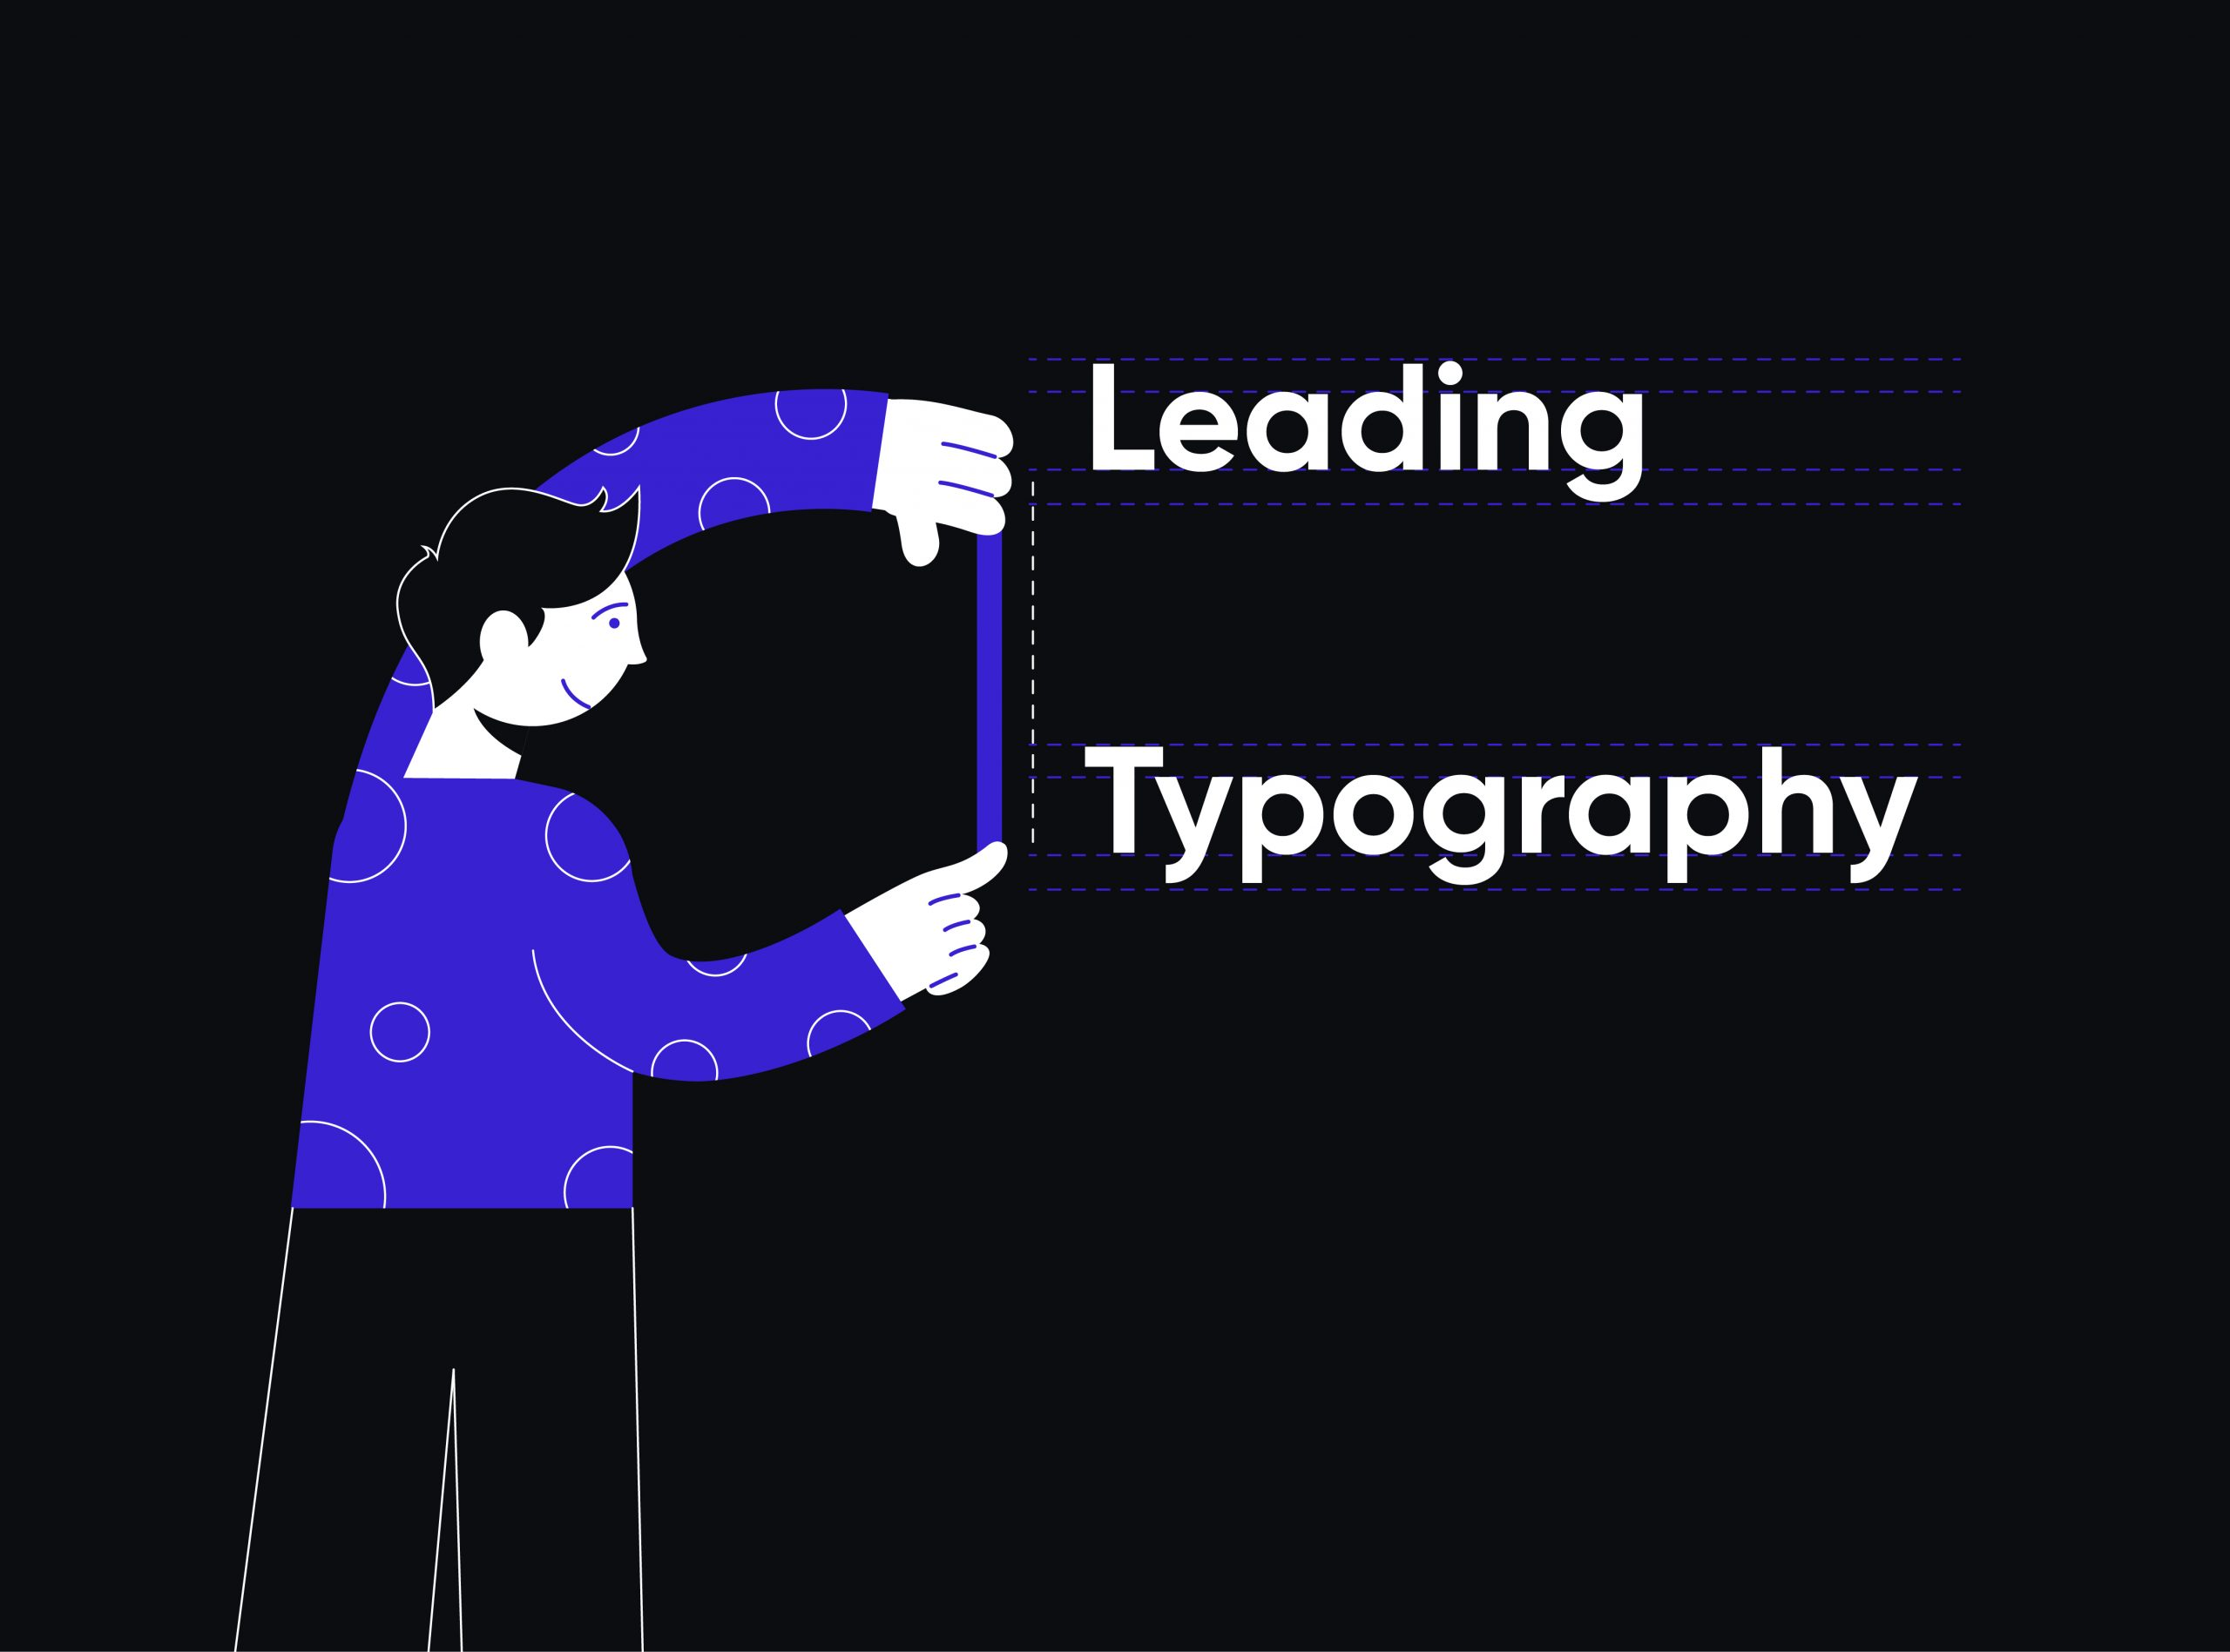 What is Leading in Typography?